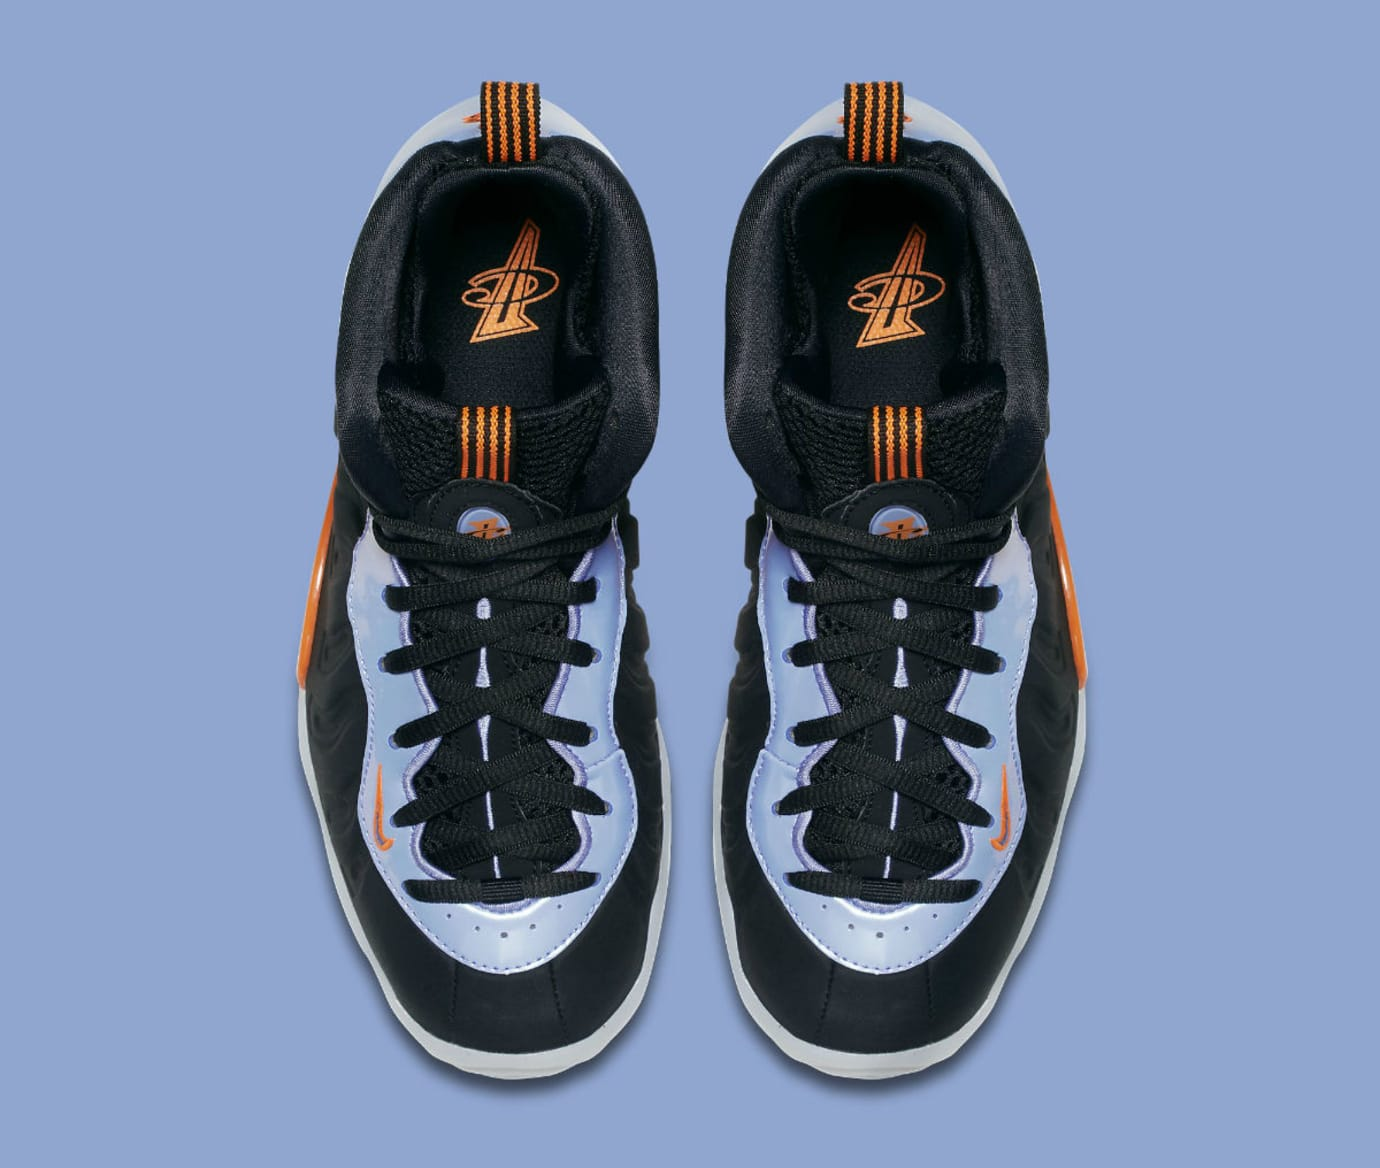 be6d7bd9840b7 Image via Nike Nike Little Posite One Black Total Orange Twilight Pulse  White Release Date 644791-008 Top